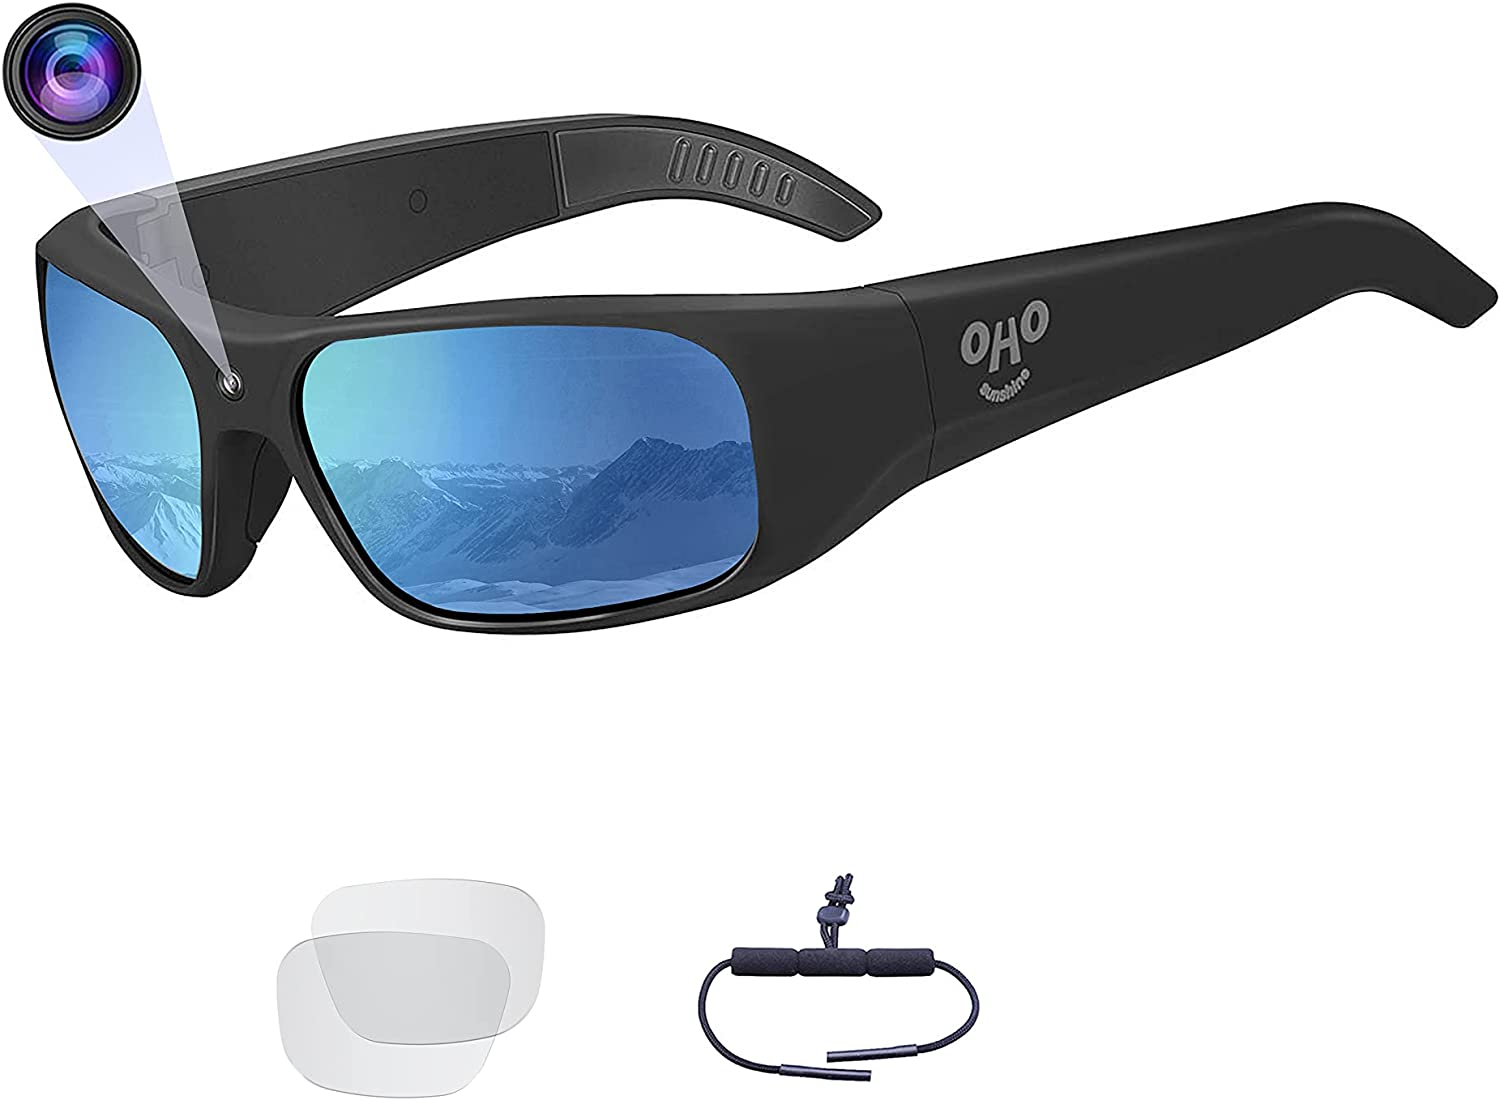 Gifts OhO sunshine Waterproof Video Audio w Built-in Memory Sunglasses 2021 spring and summer new